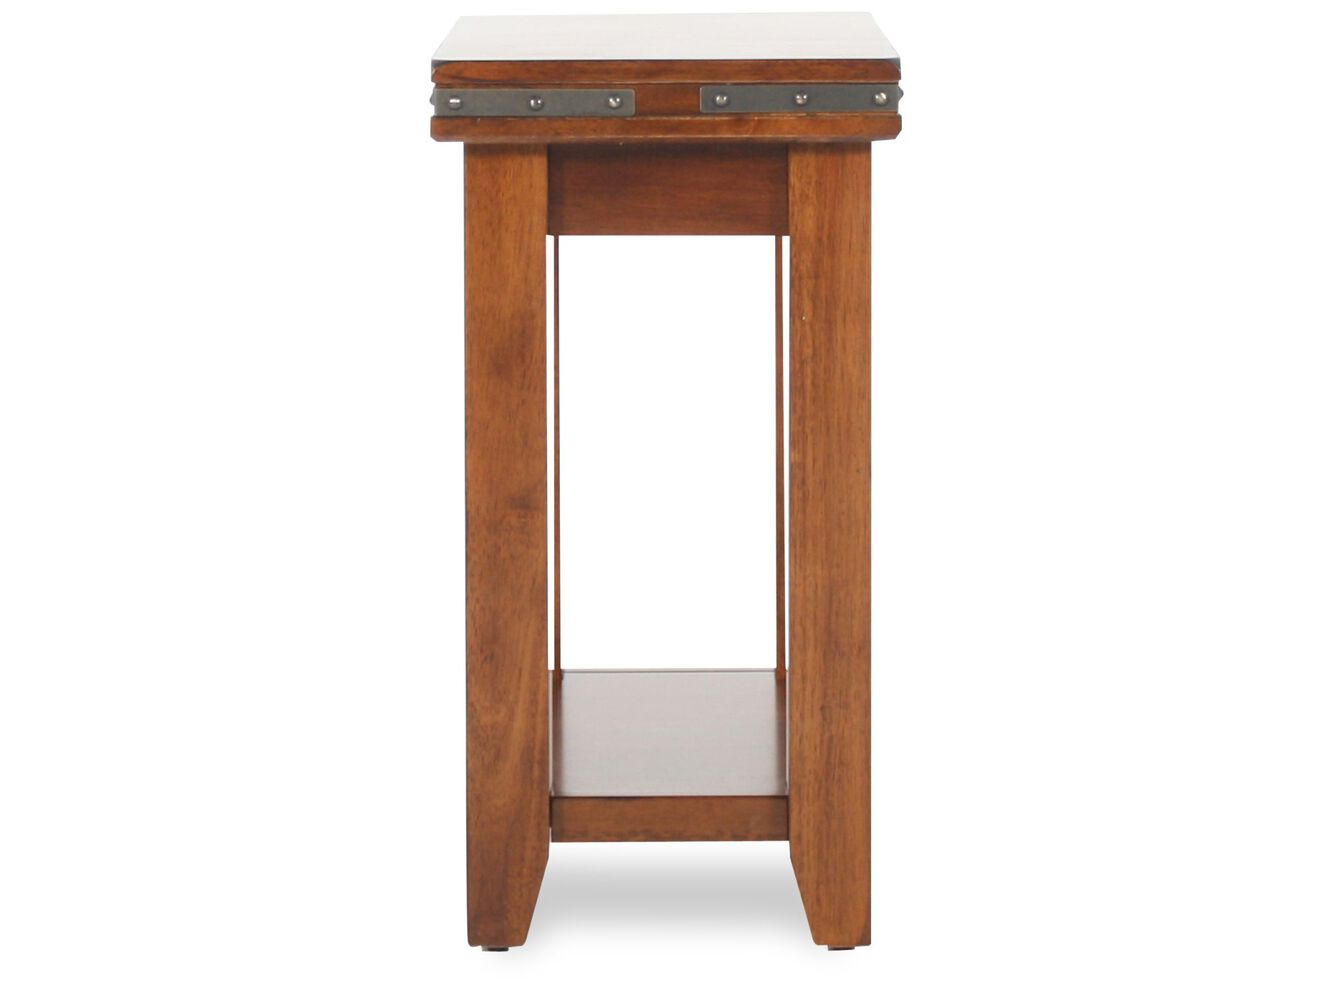 winners only mango small end table  mathis brothers furniture - winners only mango small end table